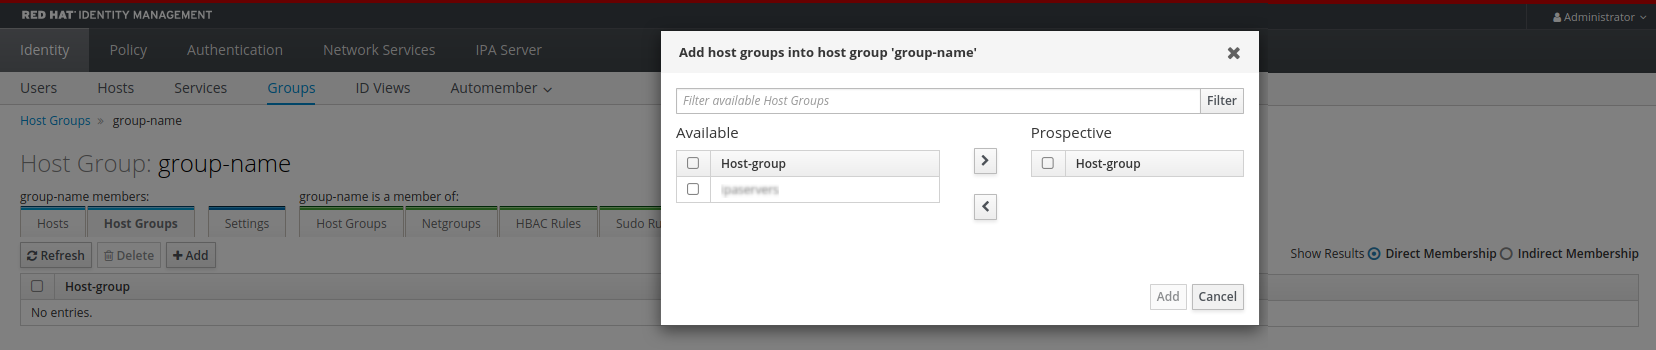 """Screenshot of the """"Add host groups into host group group-name"""" pop-up window which lets you select from """"Available host groups"""" on the left to add to a """"Prospective"""" list on the right. There is an """"Add"""" button at the bottom-right of the window."""